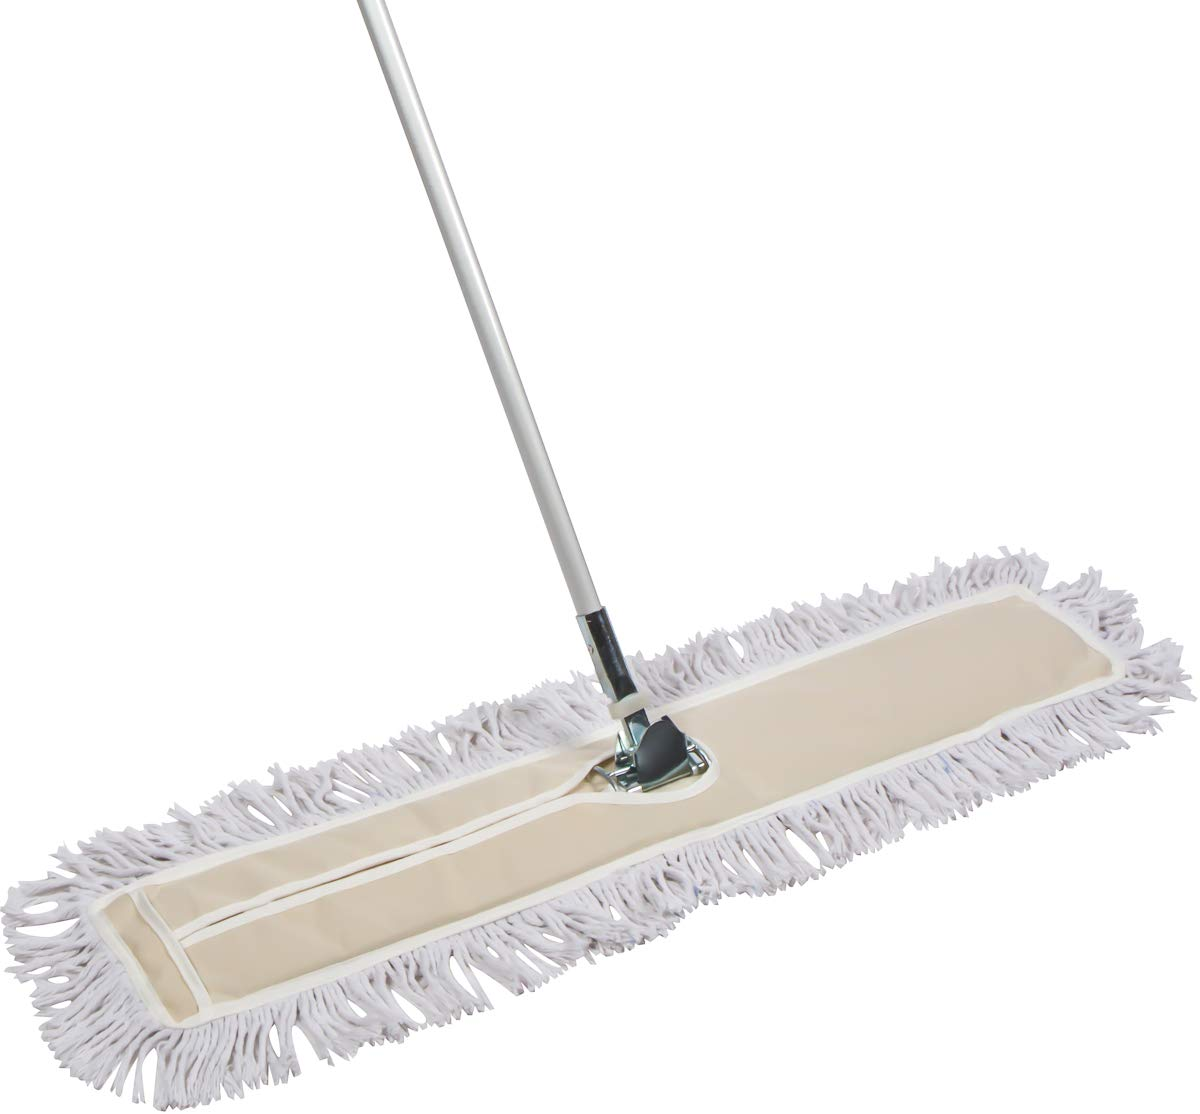 Tidy Tools 35 Inch Industrial Strength Cotton Dust Mop with Metal Telescopic Handle and Frame. 35'' X 5'' Wide Mop Head with Cut Ends - Hardwood Floor Broom